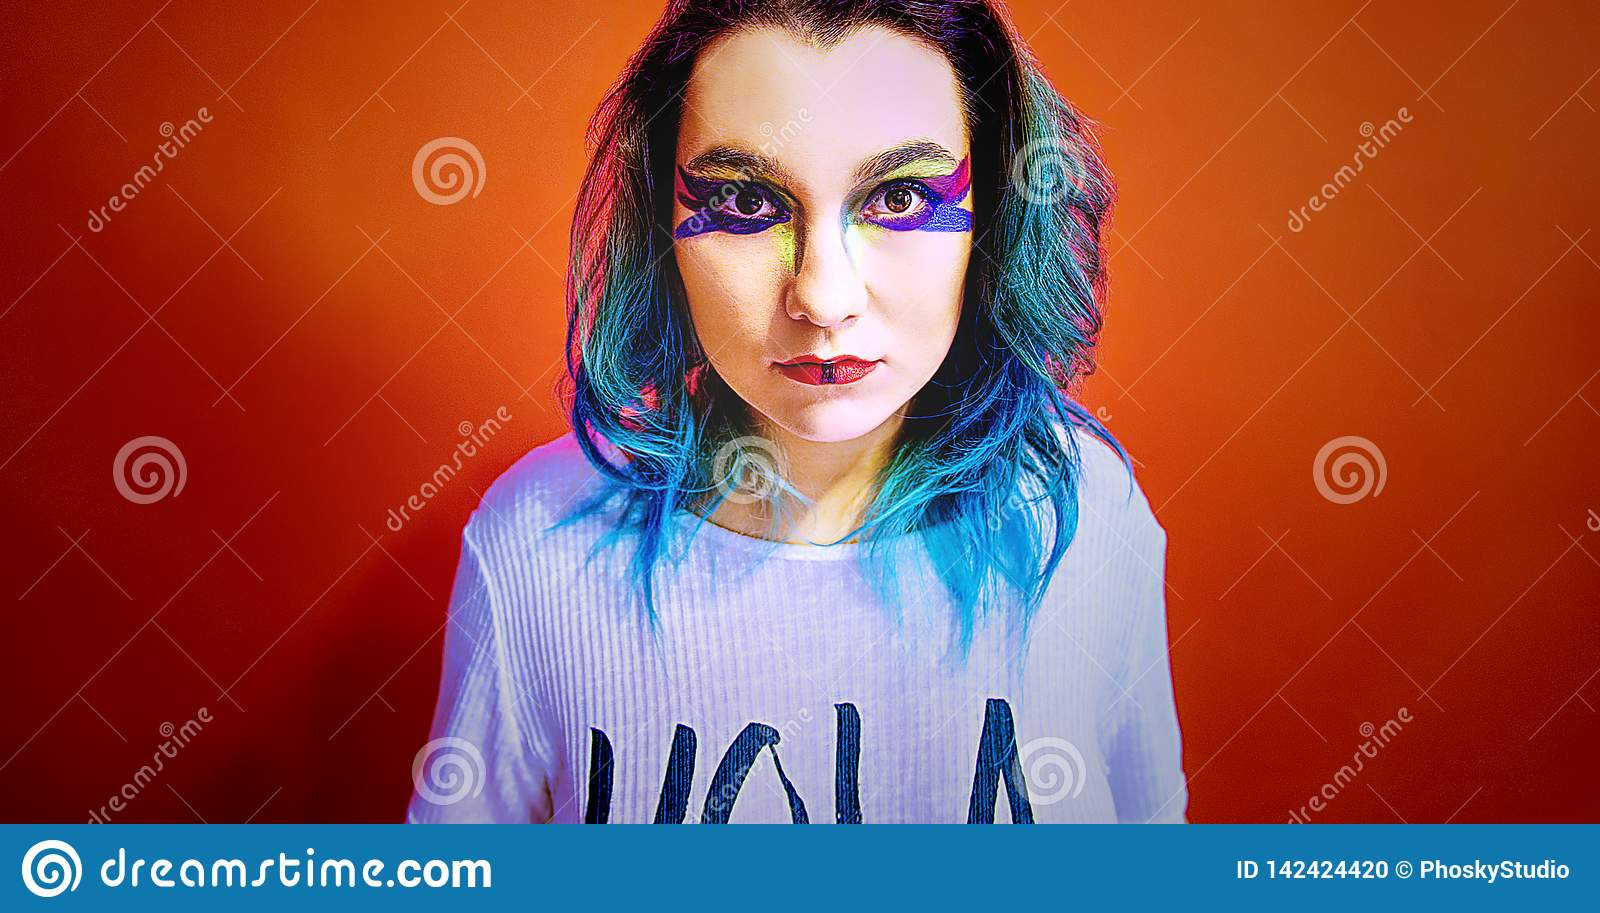 Portrait of a girl with blue hair in a very colorful make-up.